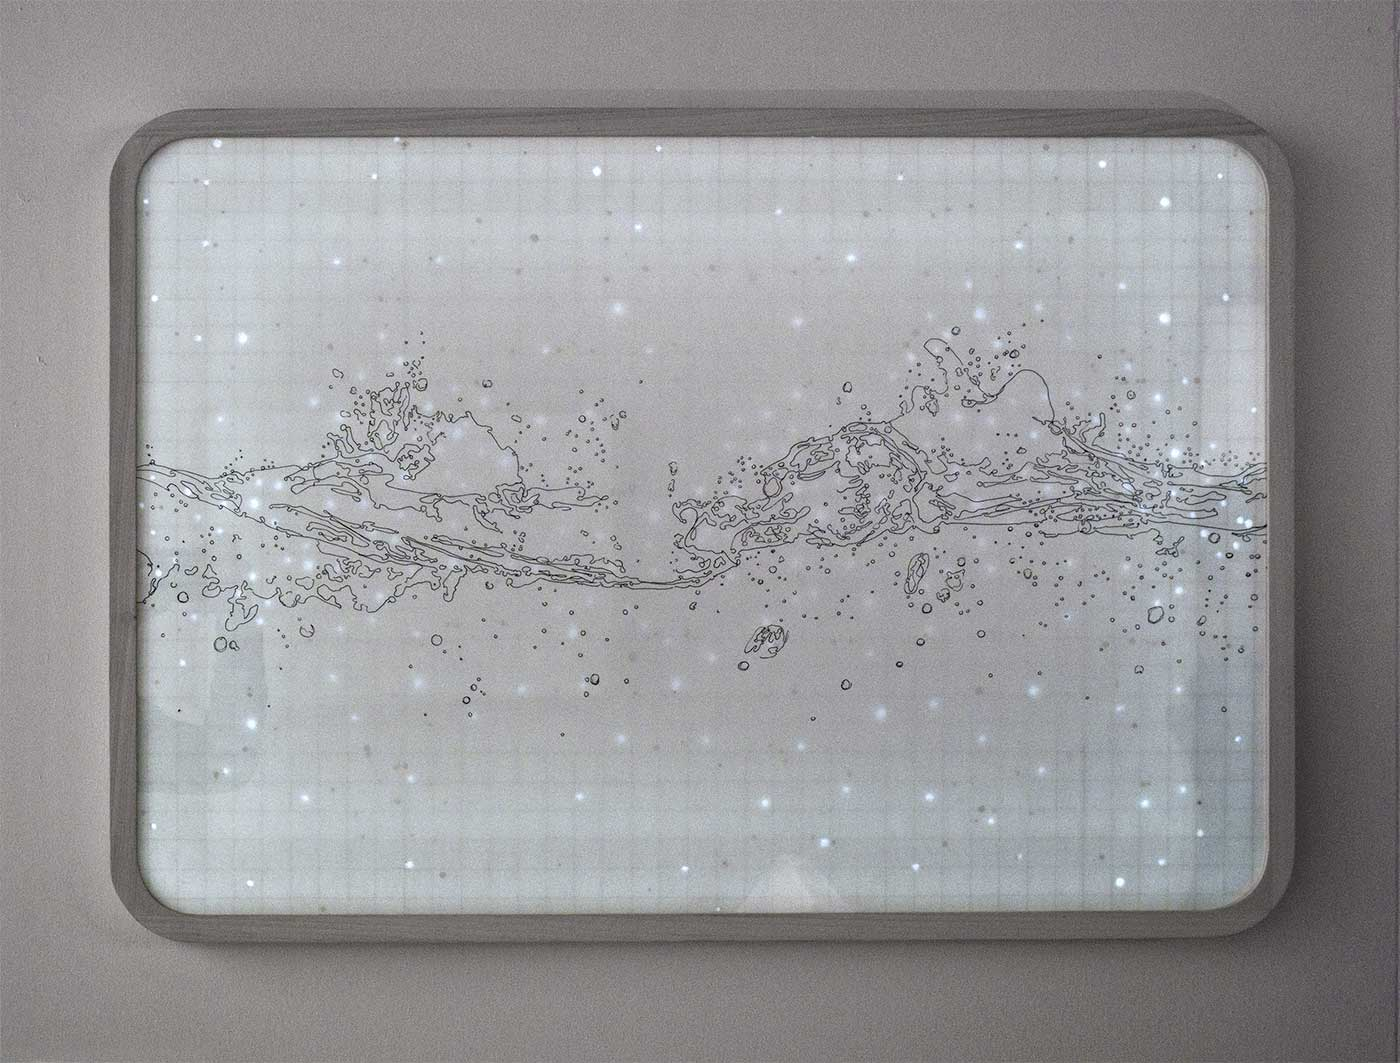 Light box, ink on paper, wood and glass, cm 83 x 59 x 5